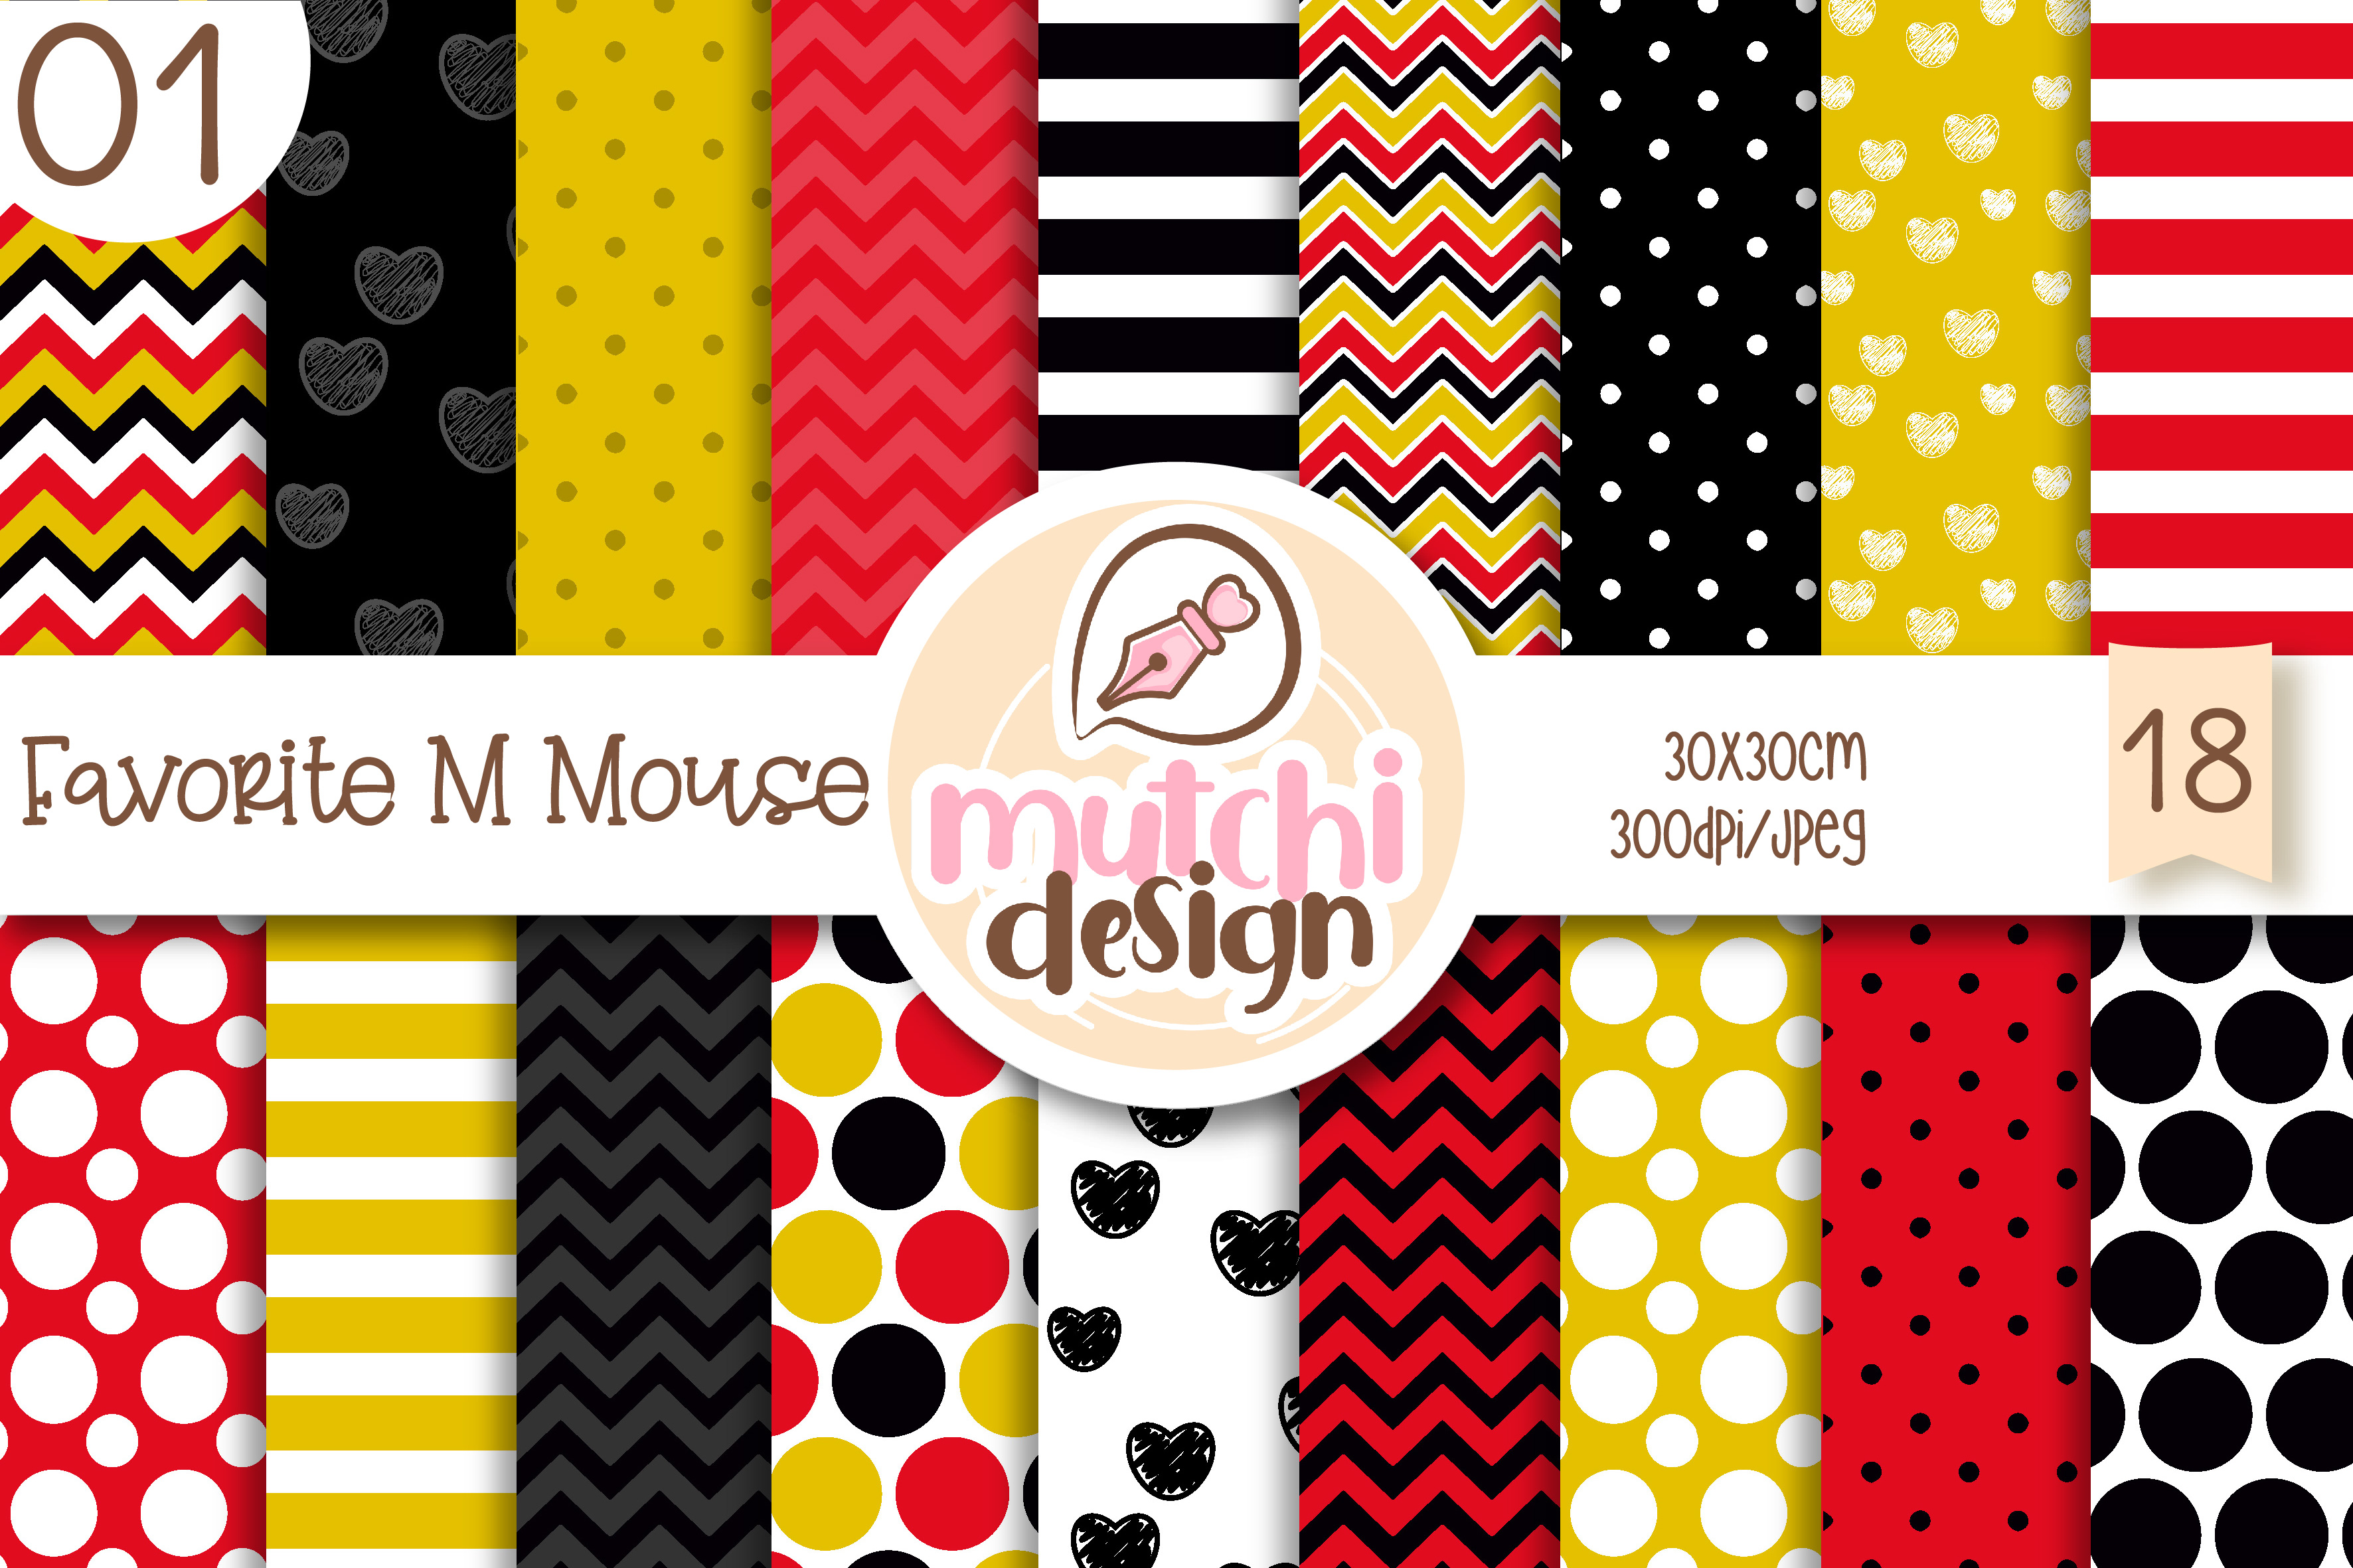 Download Free Favorite M Mouse 01 Digital Papers Graphic By Mutchi Design for Cricut Explore, Silhouette and other cutting machines.